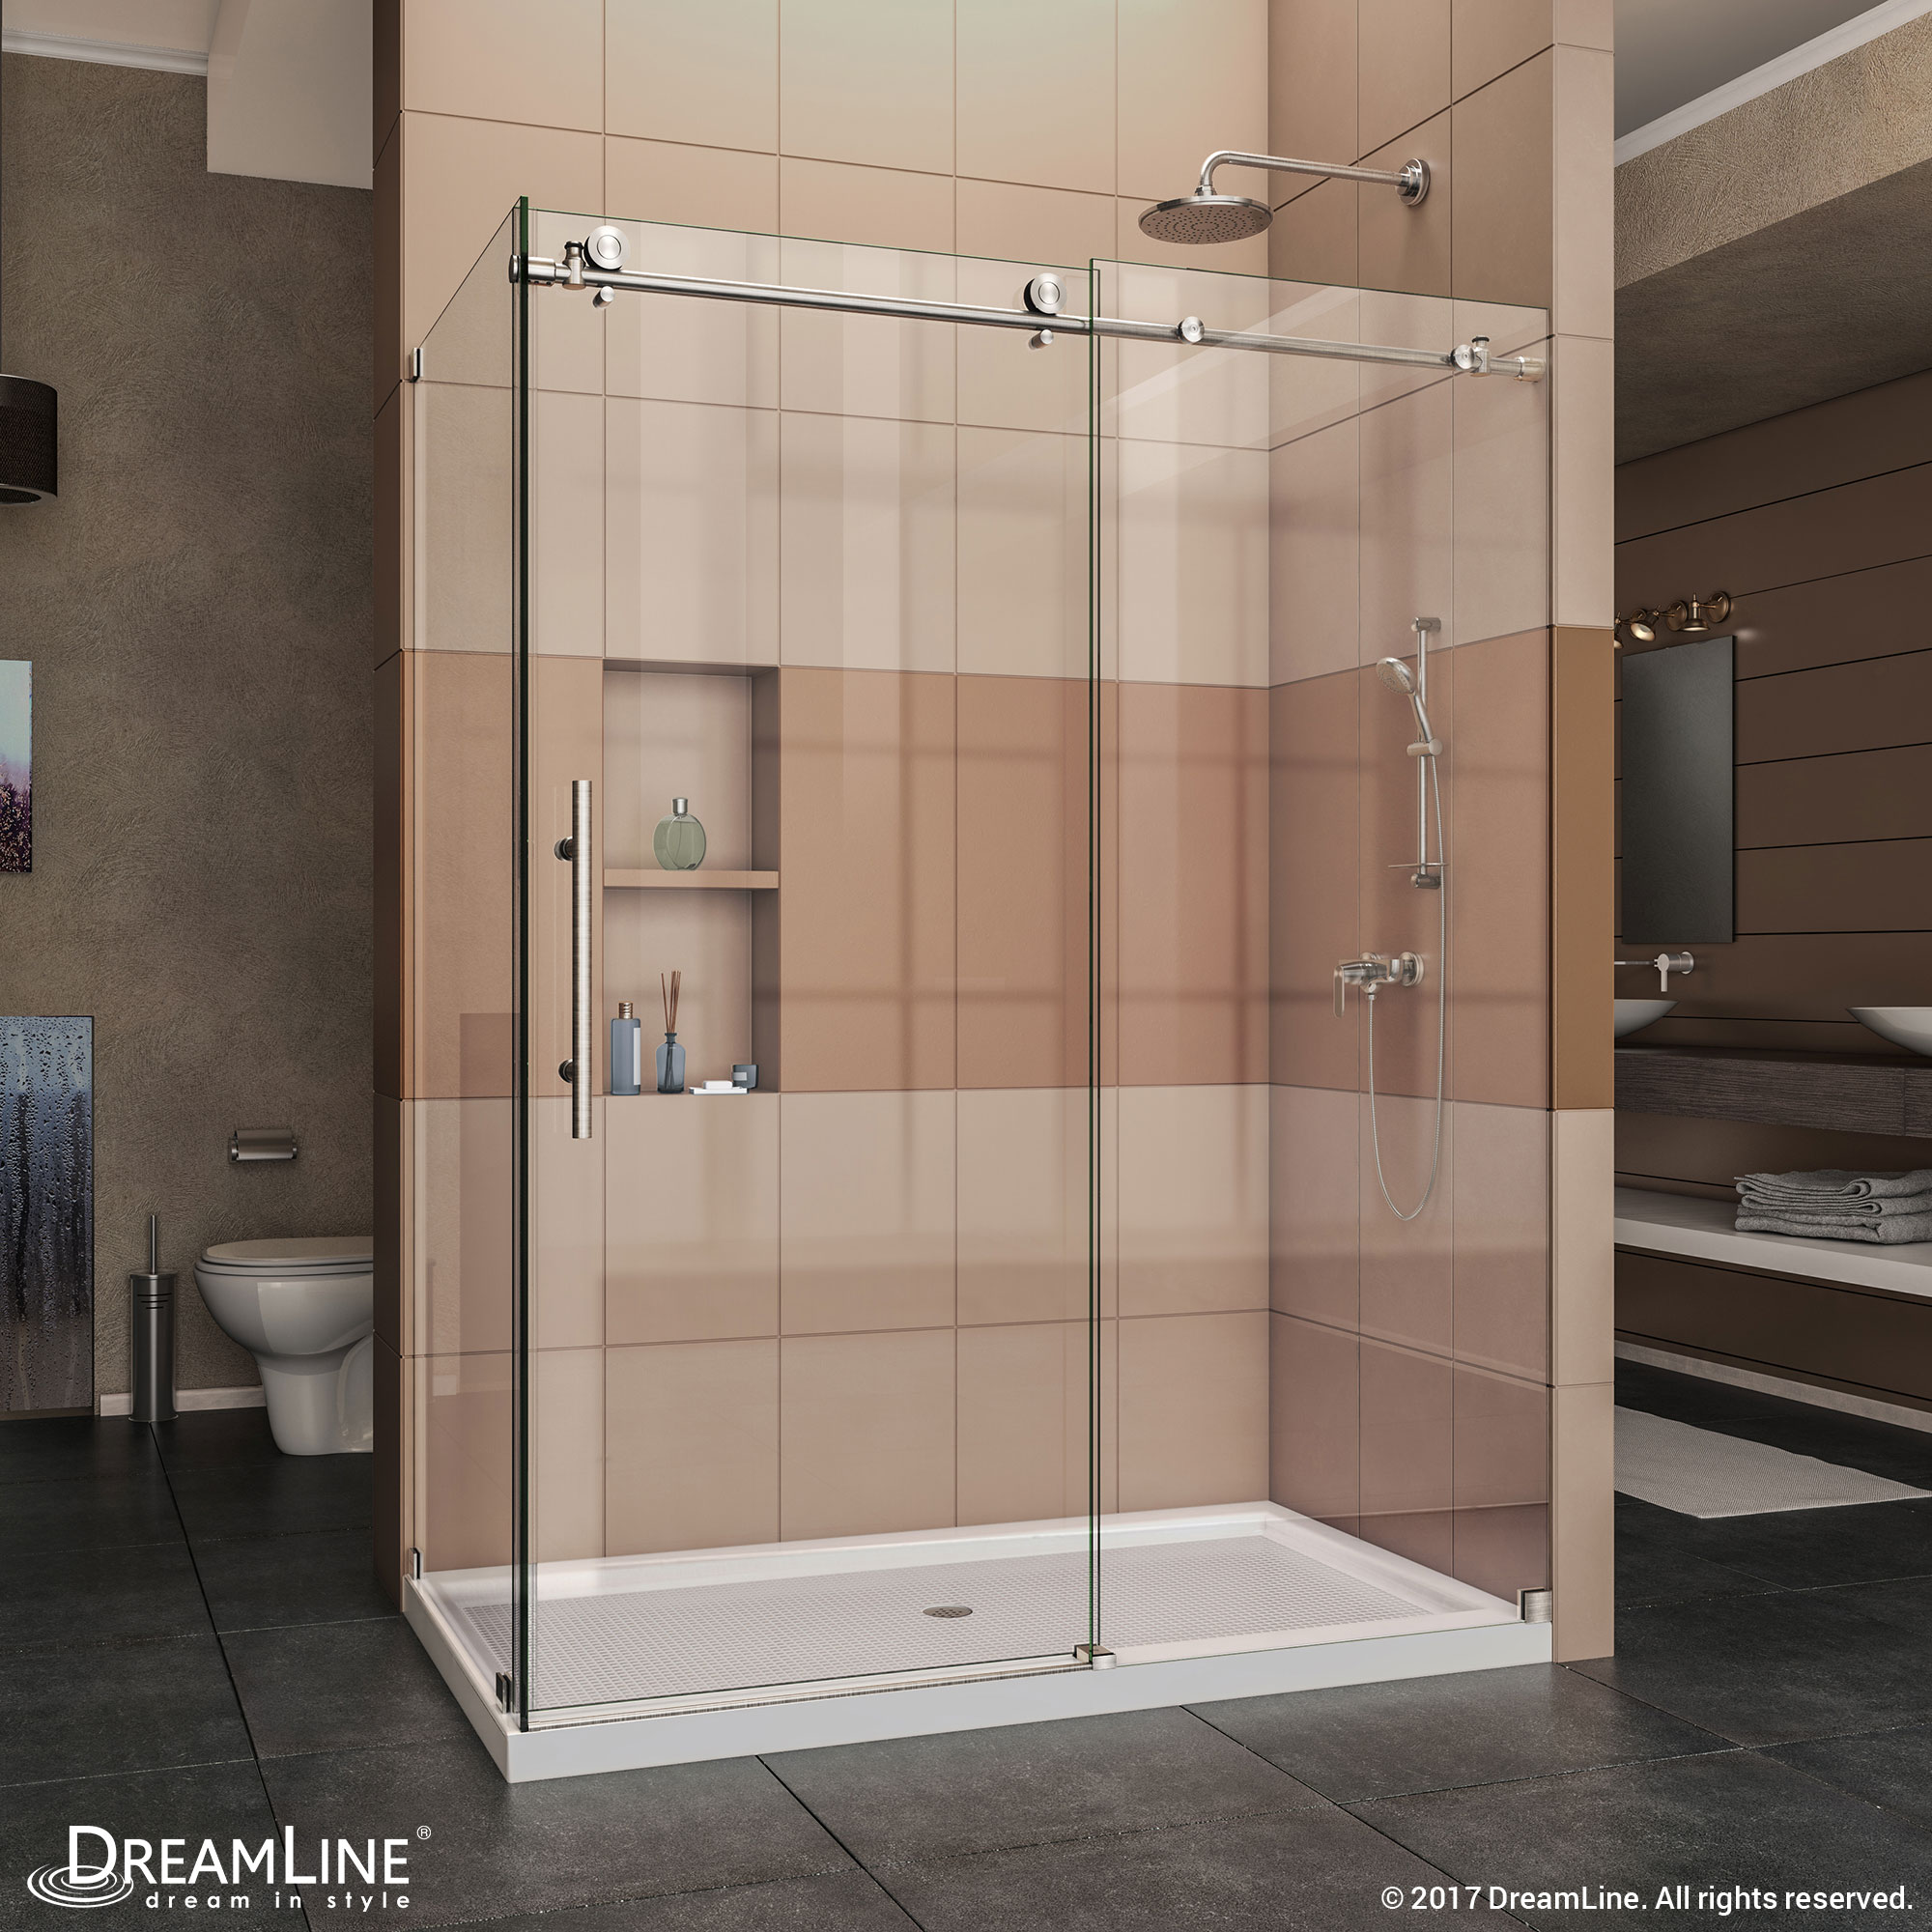 "Enigma-X 34-1/2"" x 48-3/8"" Fully Frameless Sliding Shower Enclosure, Clear 3/8"" Glass, Polished Stainless Steel"